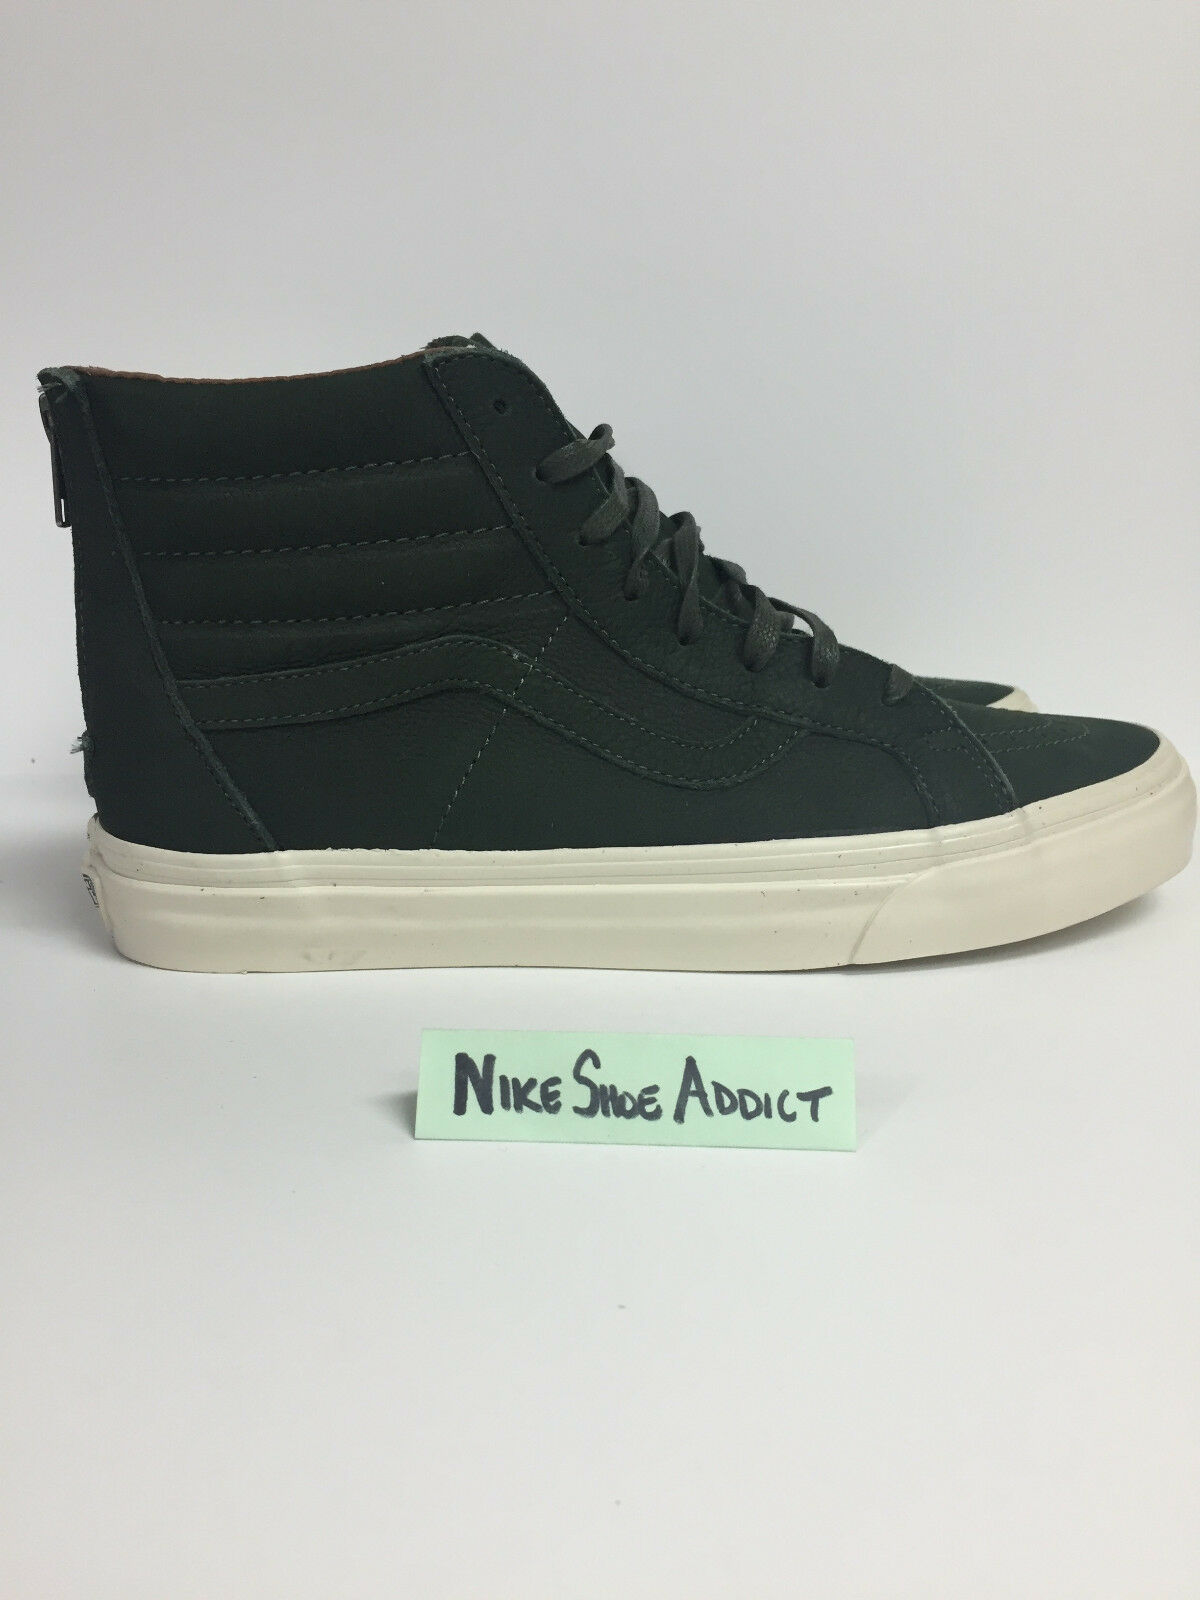 Vans SK8-HI Reissue Zipper Premium Leather DARK DARK DARK GREEN VN0A349AM35 Vault f2089d